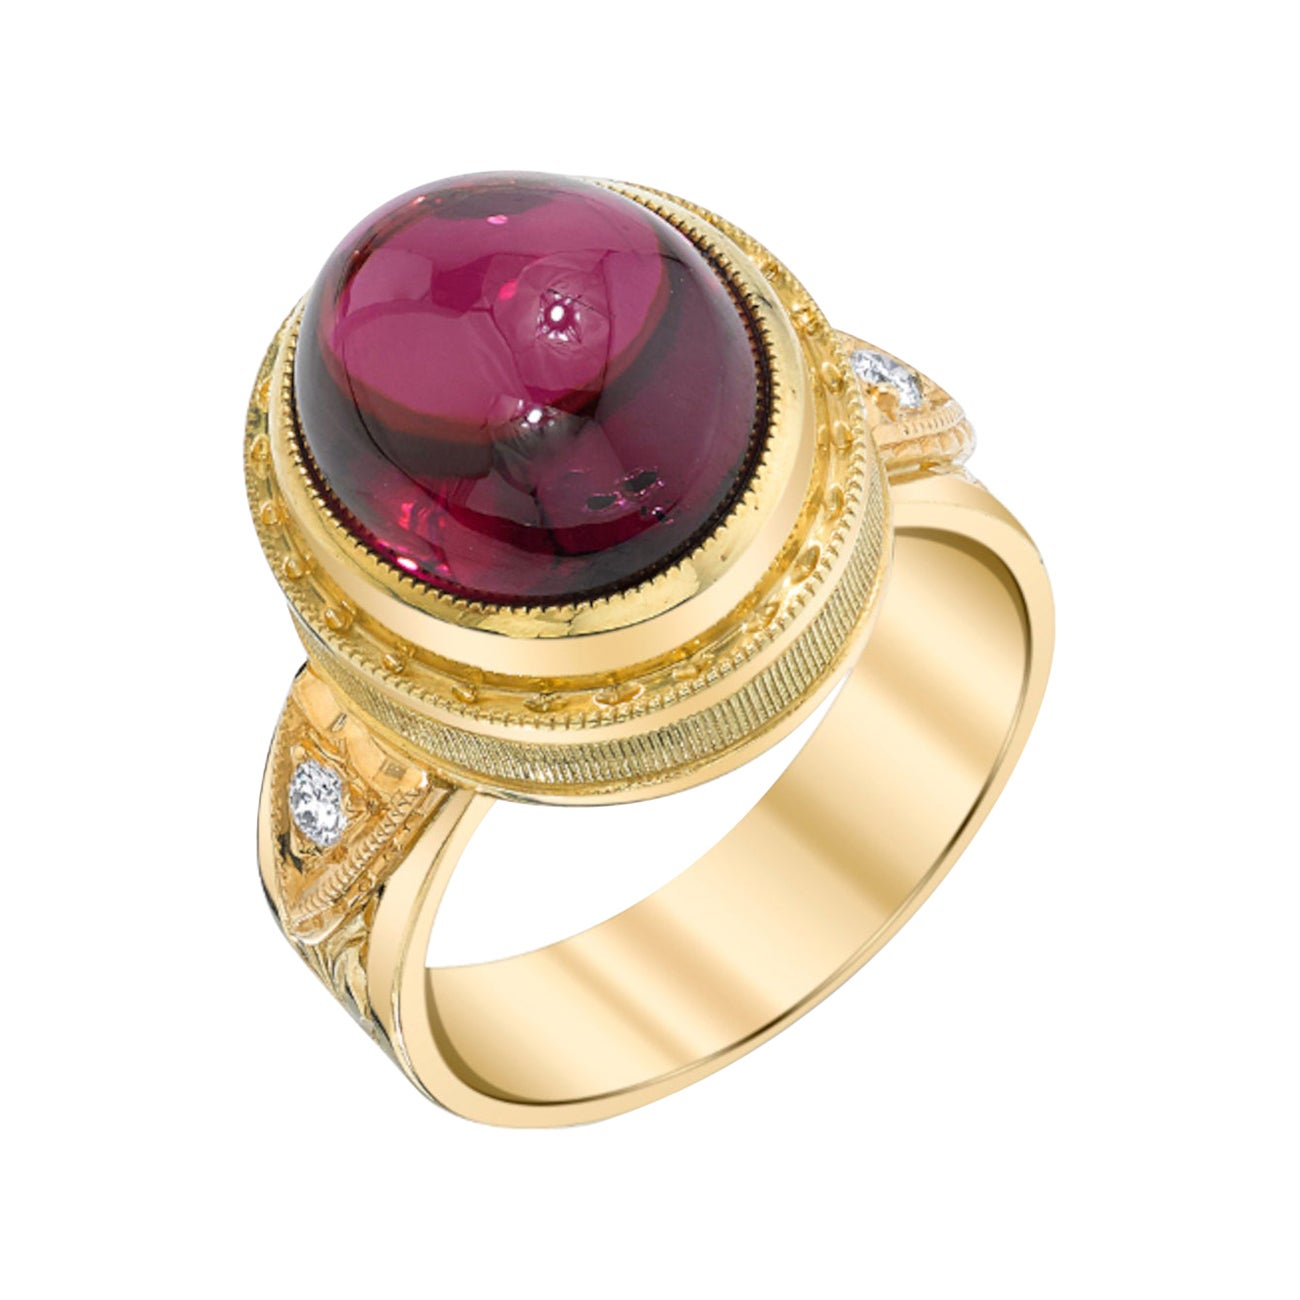 11.39 Ct Rubellite Tourmaline Cabochon, Diamond Yellow Gold Engraved Dome Ring